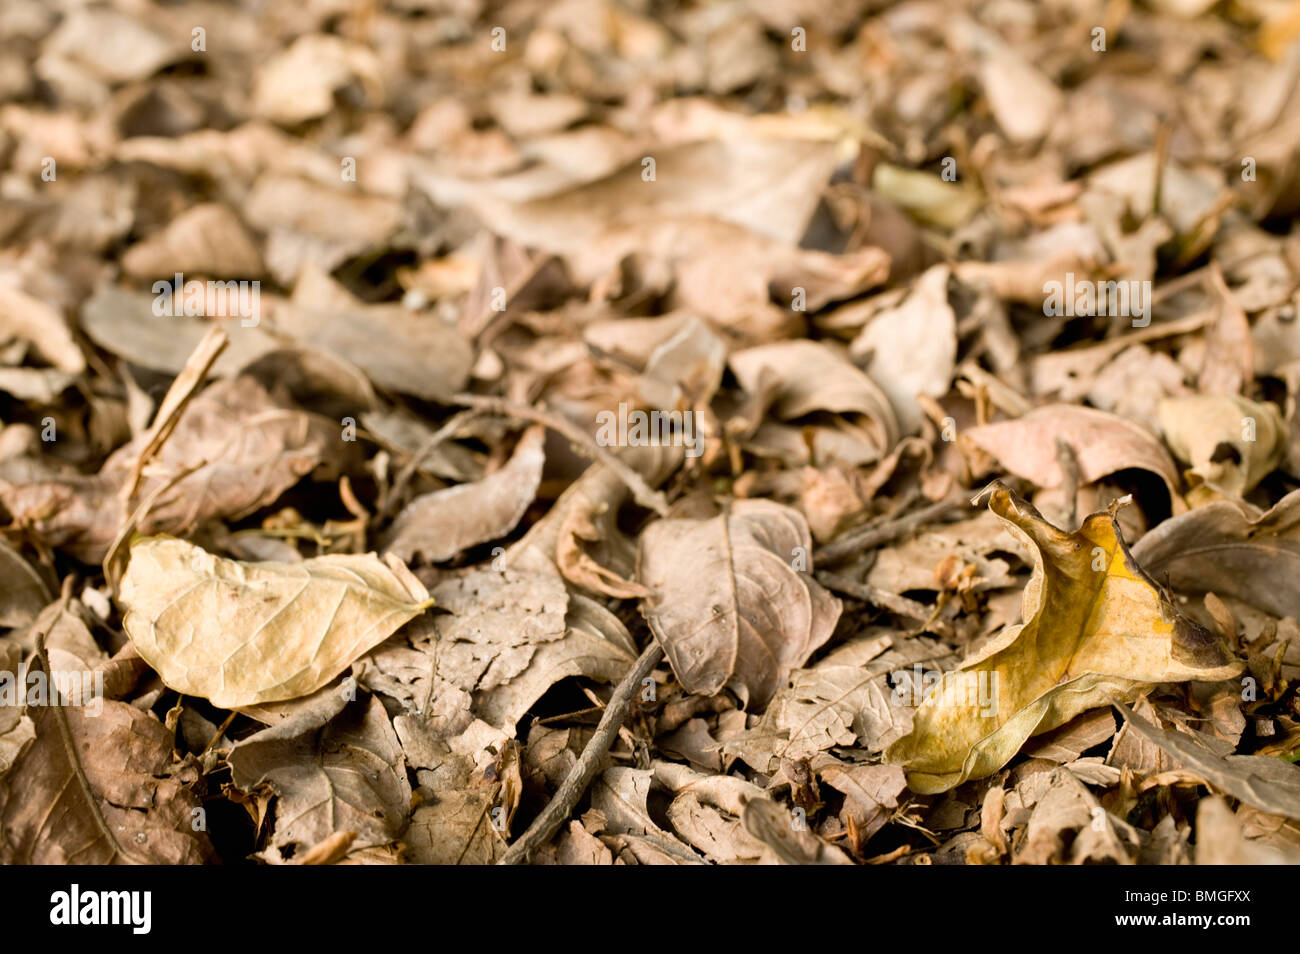 Dry, Brown Leaves On The Ground - Stock Image